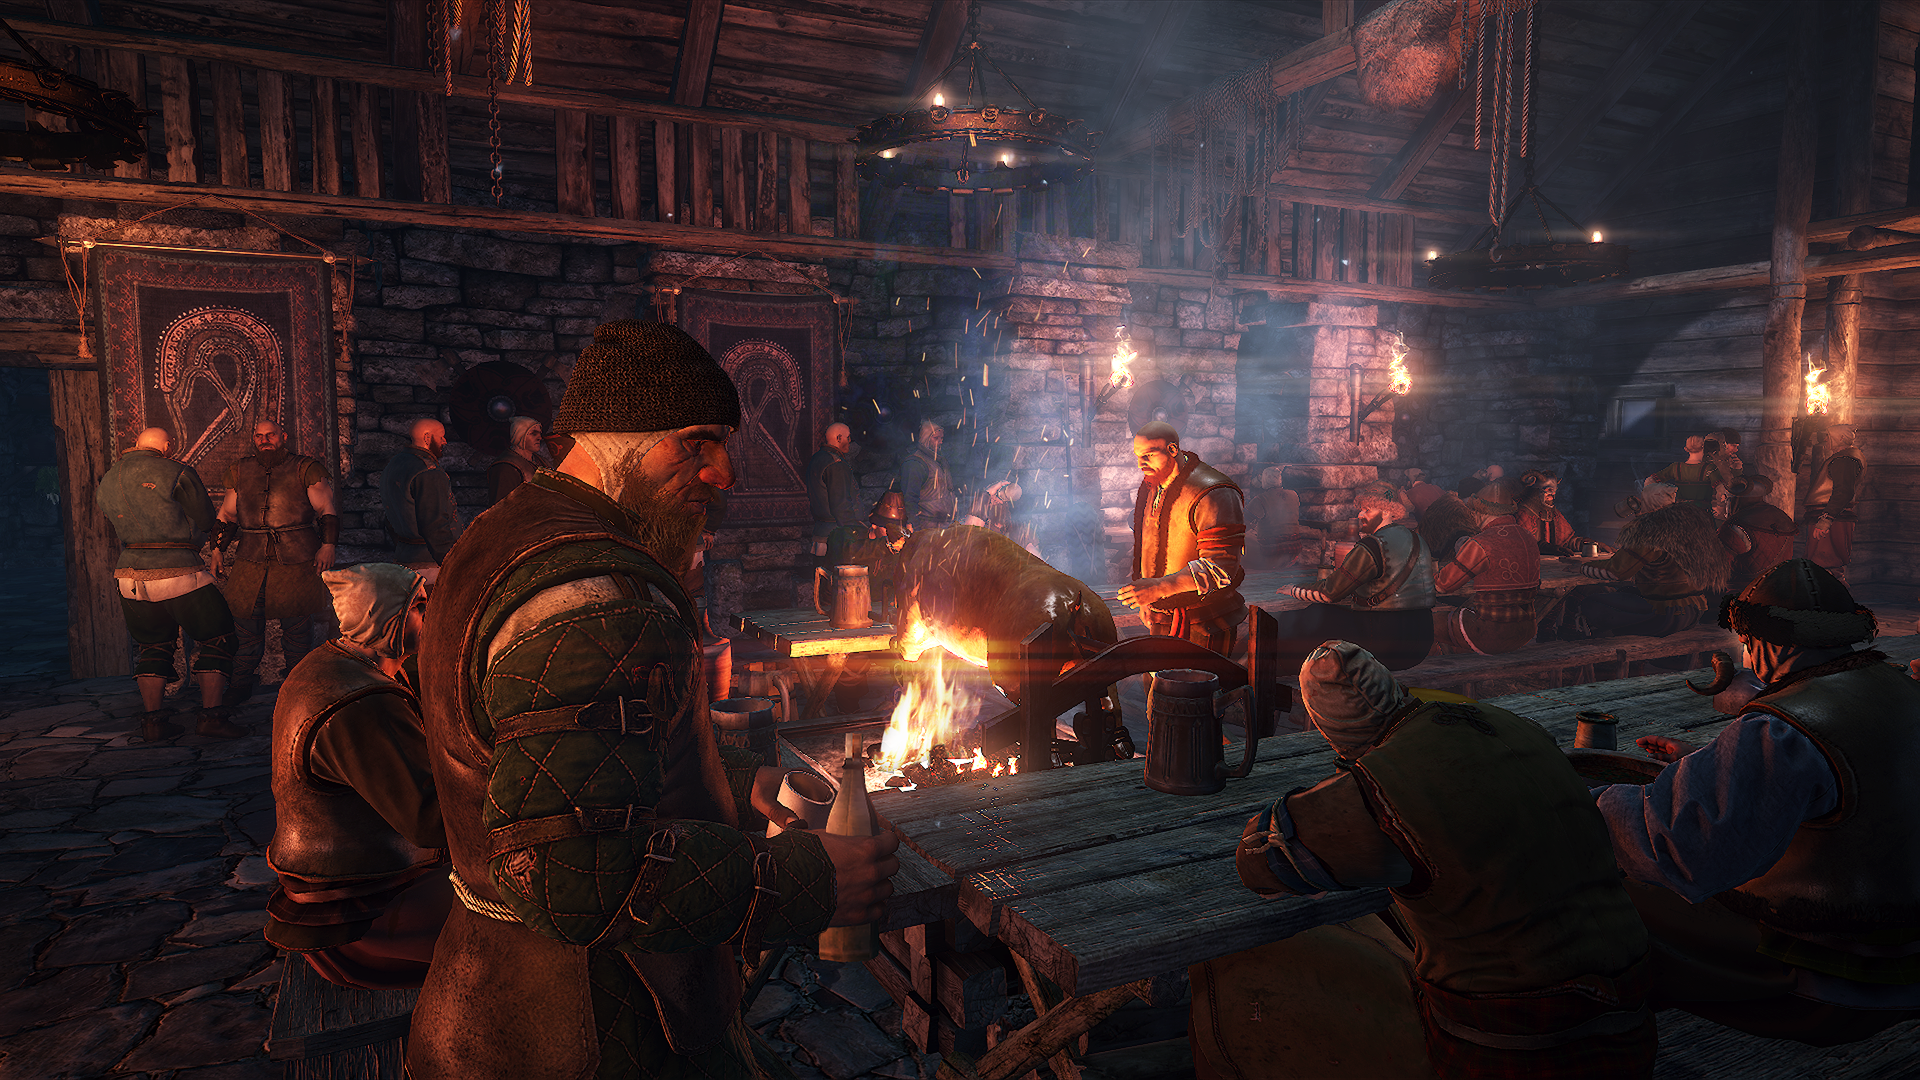 What Skyrim's taverns and inns should ACTUALLY look like